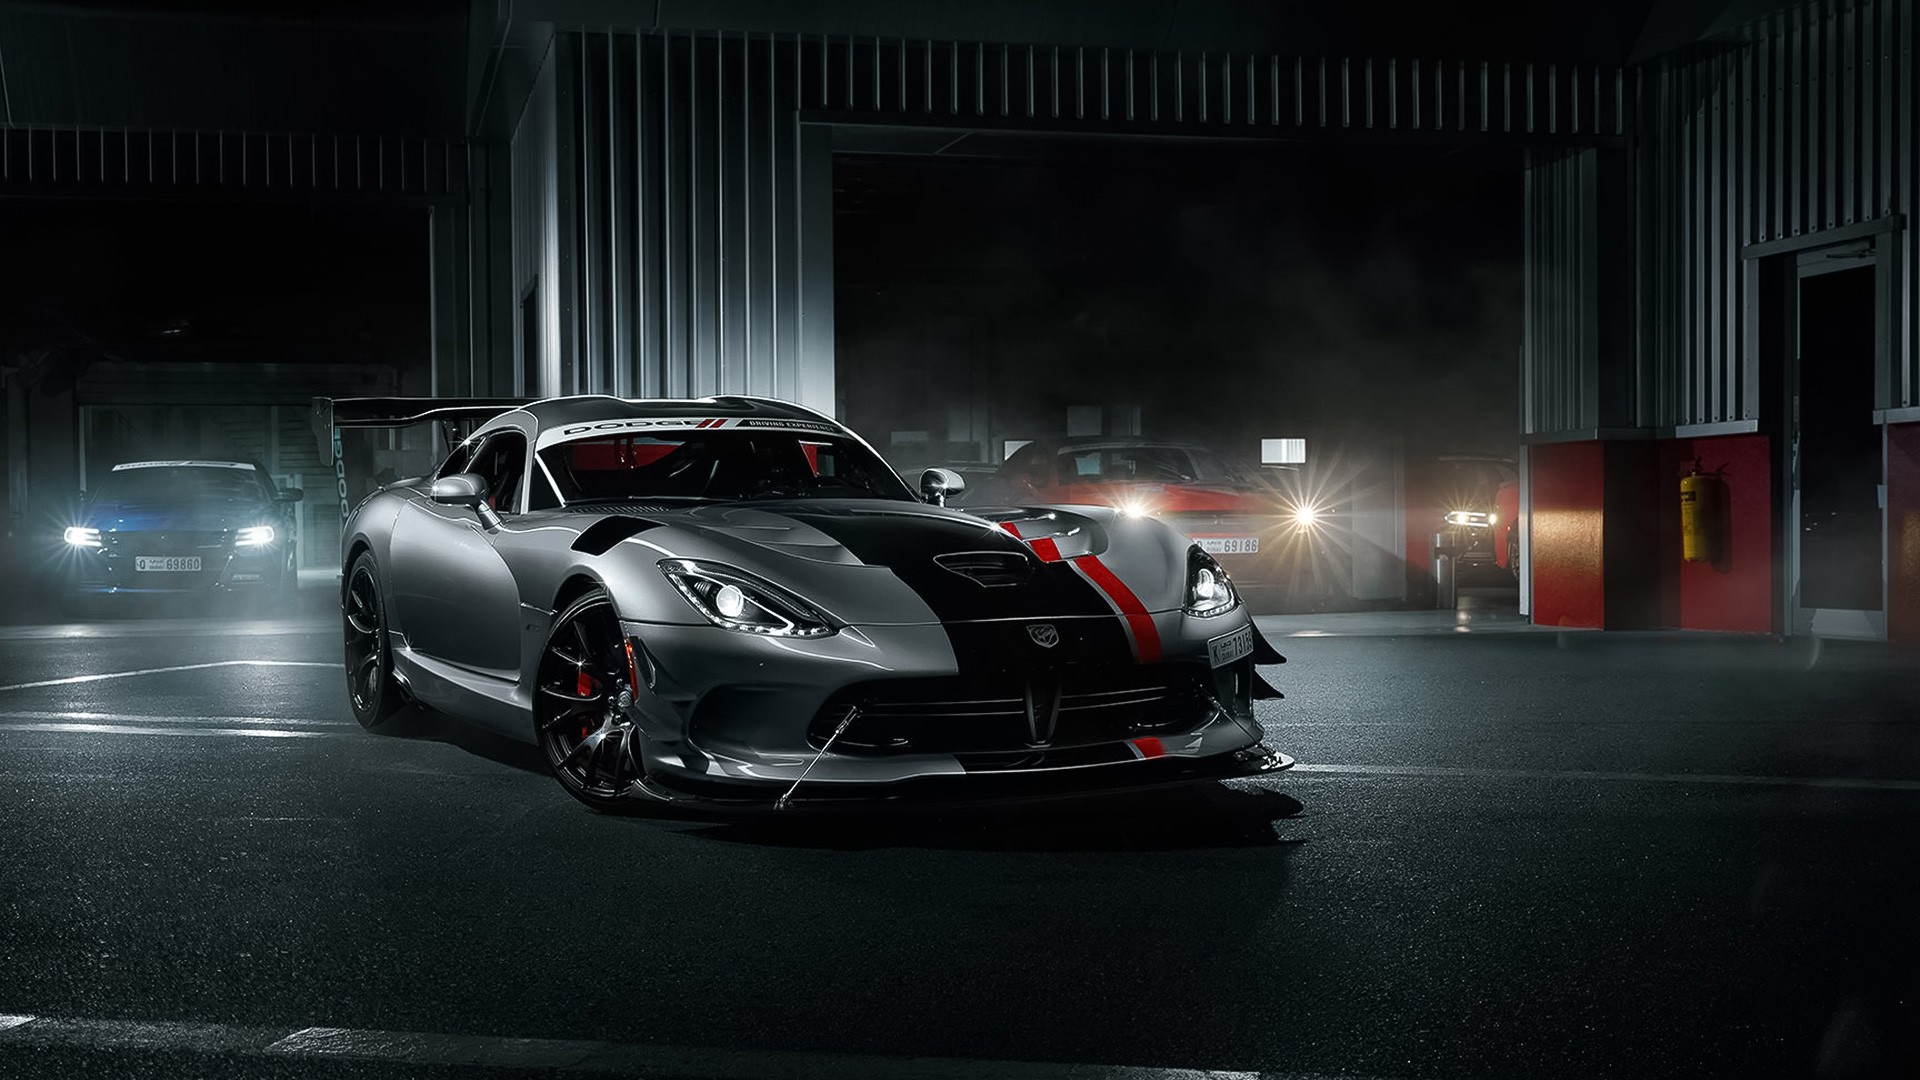 Dodge Viper Acr 2016 Wallpaper Hd Car Wallpapers Id 6536